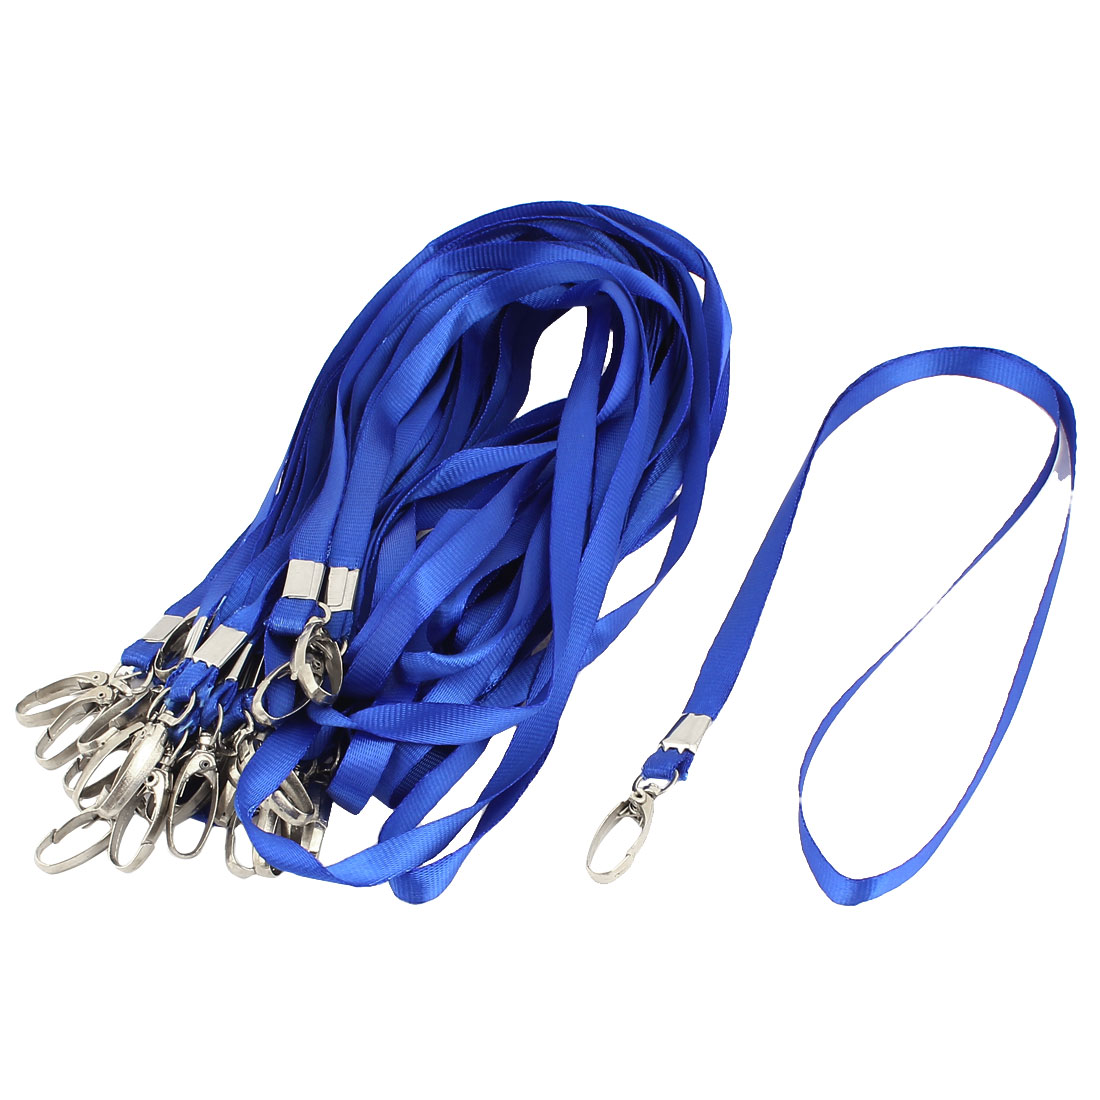 Metal Swivel Clip Office ID Name Card Badge Holder Neck Strap Lanyard Blue 36Pcs